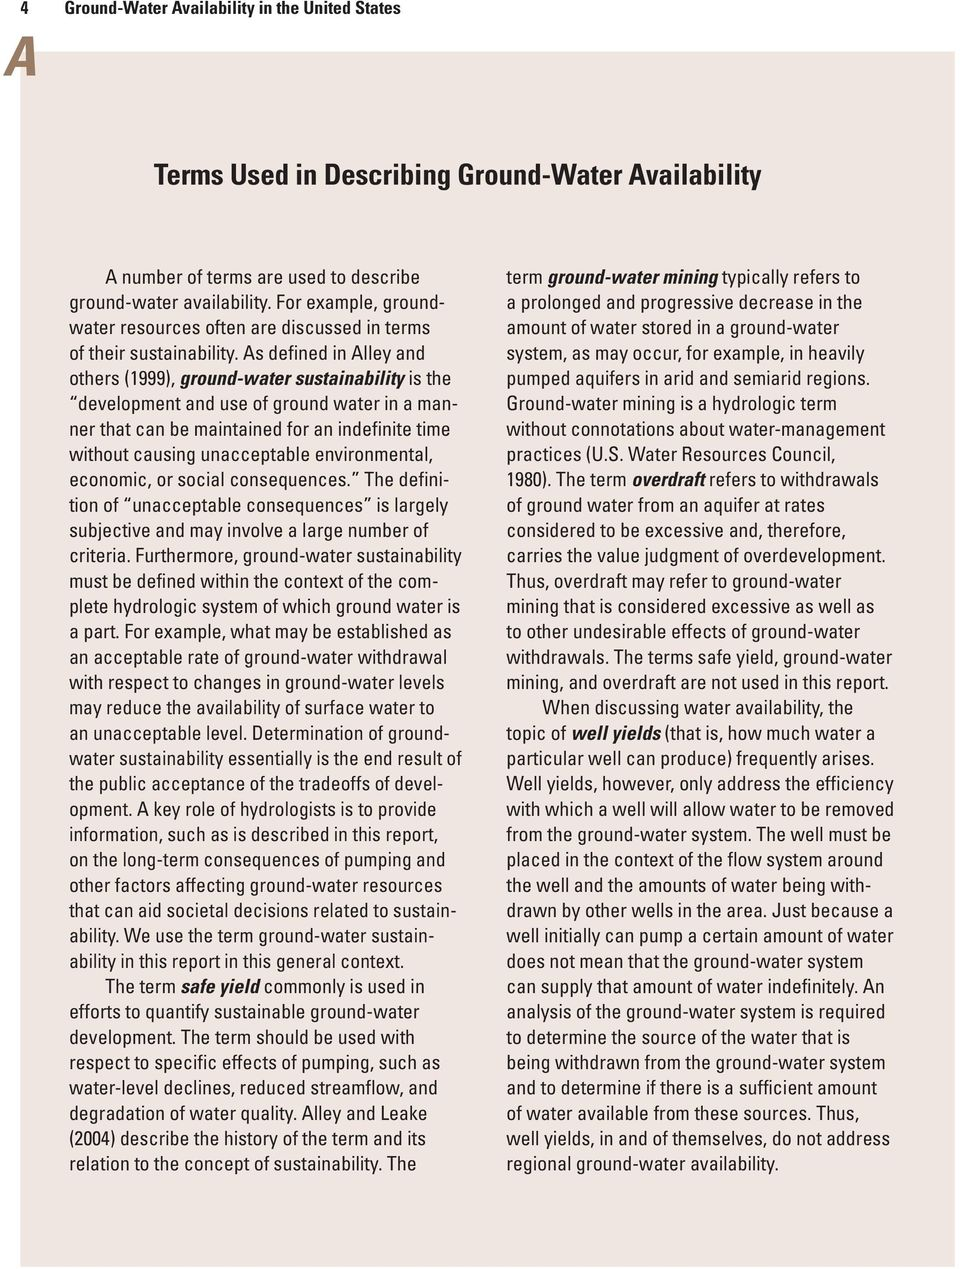 As defined in Alley and others (1999), ground-water sustainability is the development and use of ground water in a manner that can be maintained for an indefinite time without causing unacceptable